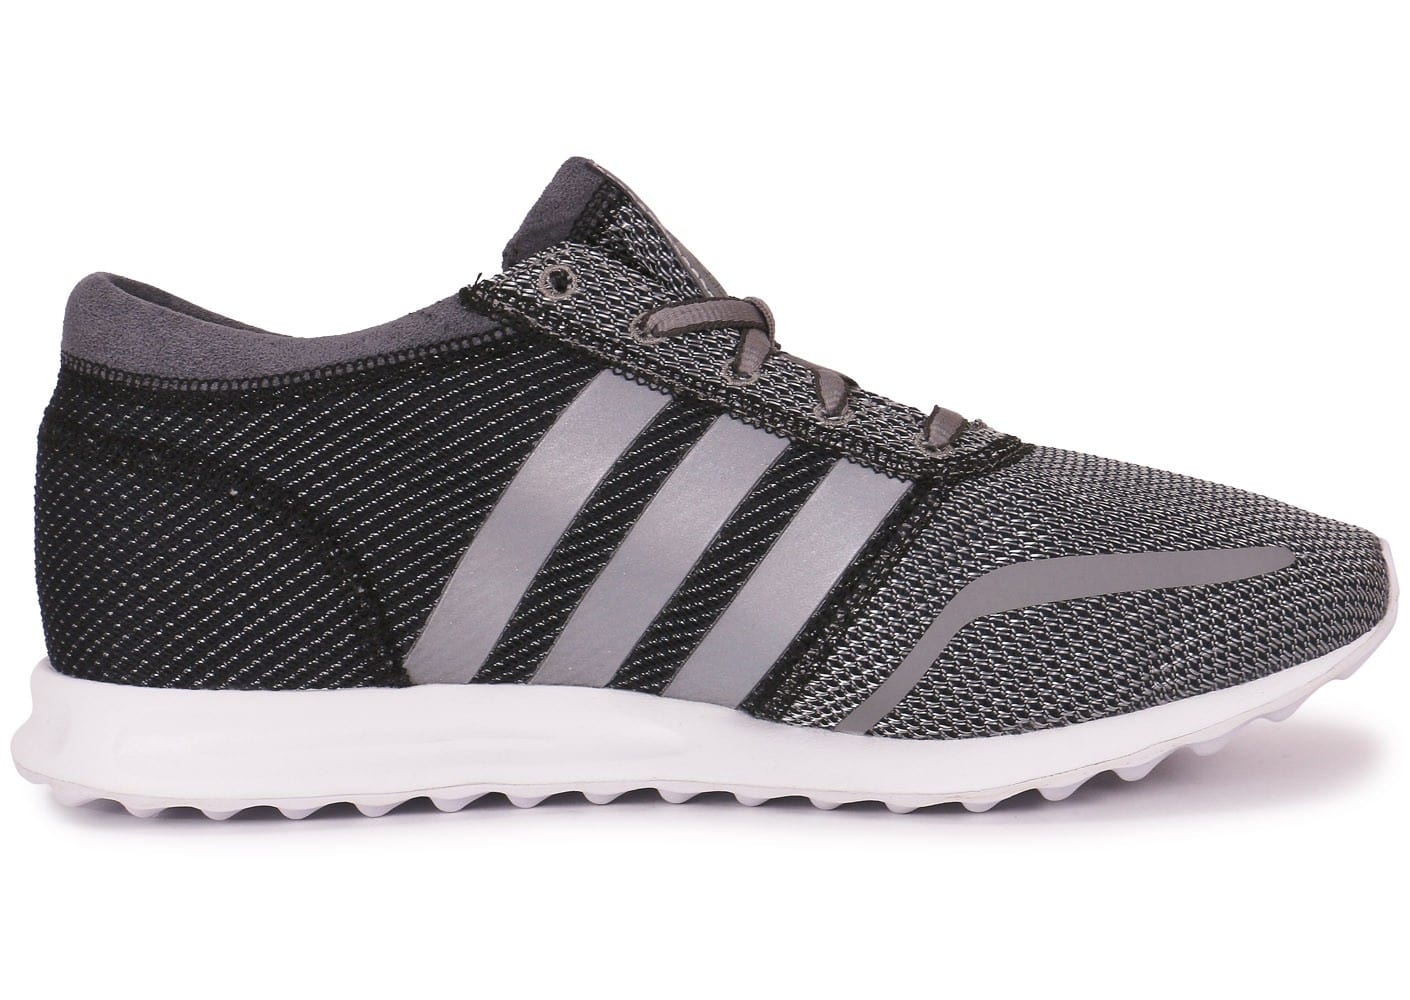 detailed look b1fcd 9809a ... Chaussures adidas Los Angeles gris anthracite vue dessous ...